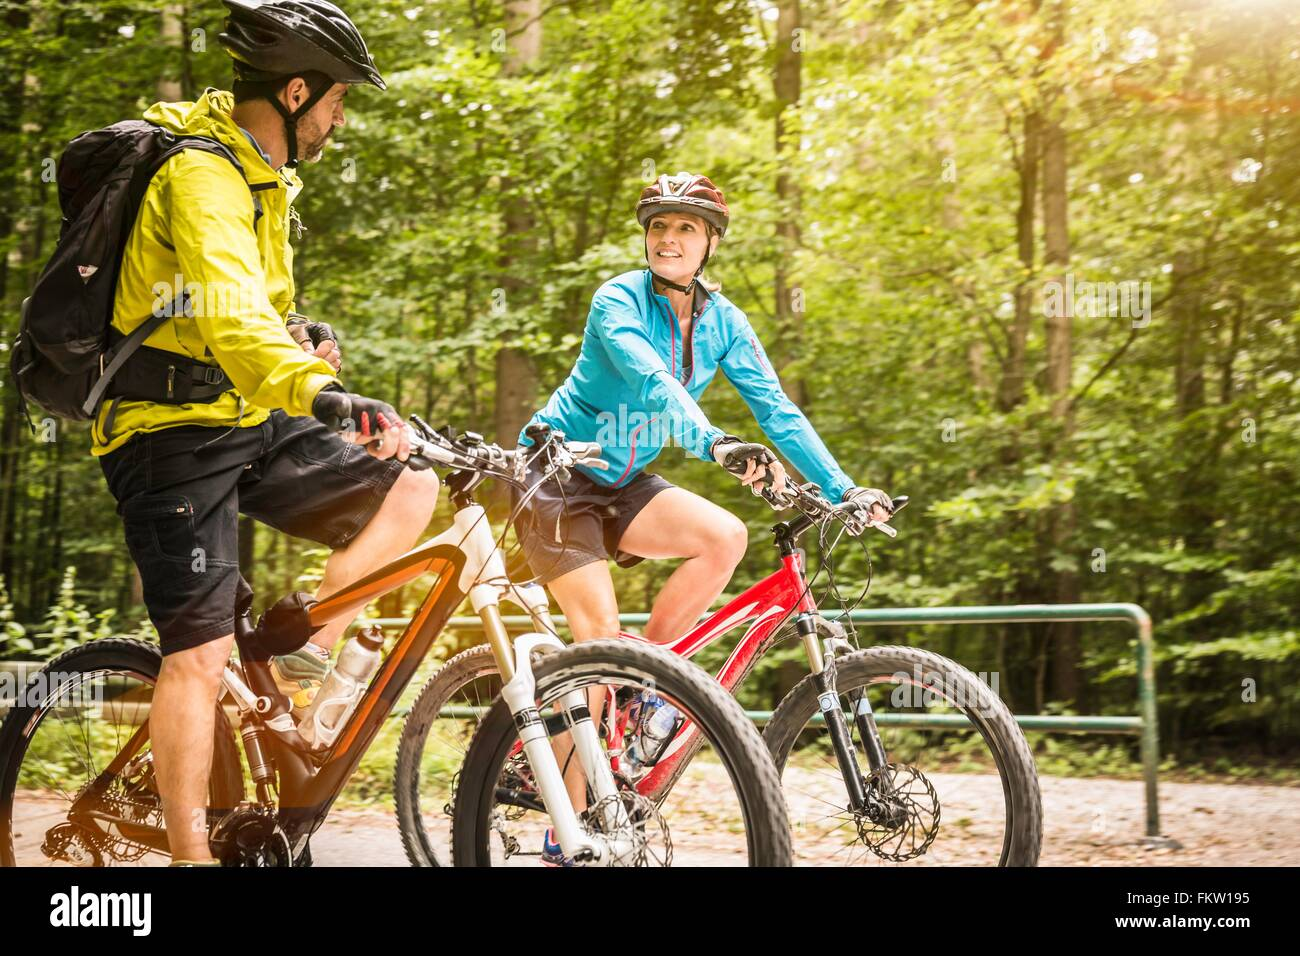 Mature mountain biking couple chatting and cycling along rural forest road - Stock Image